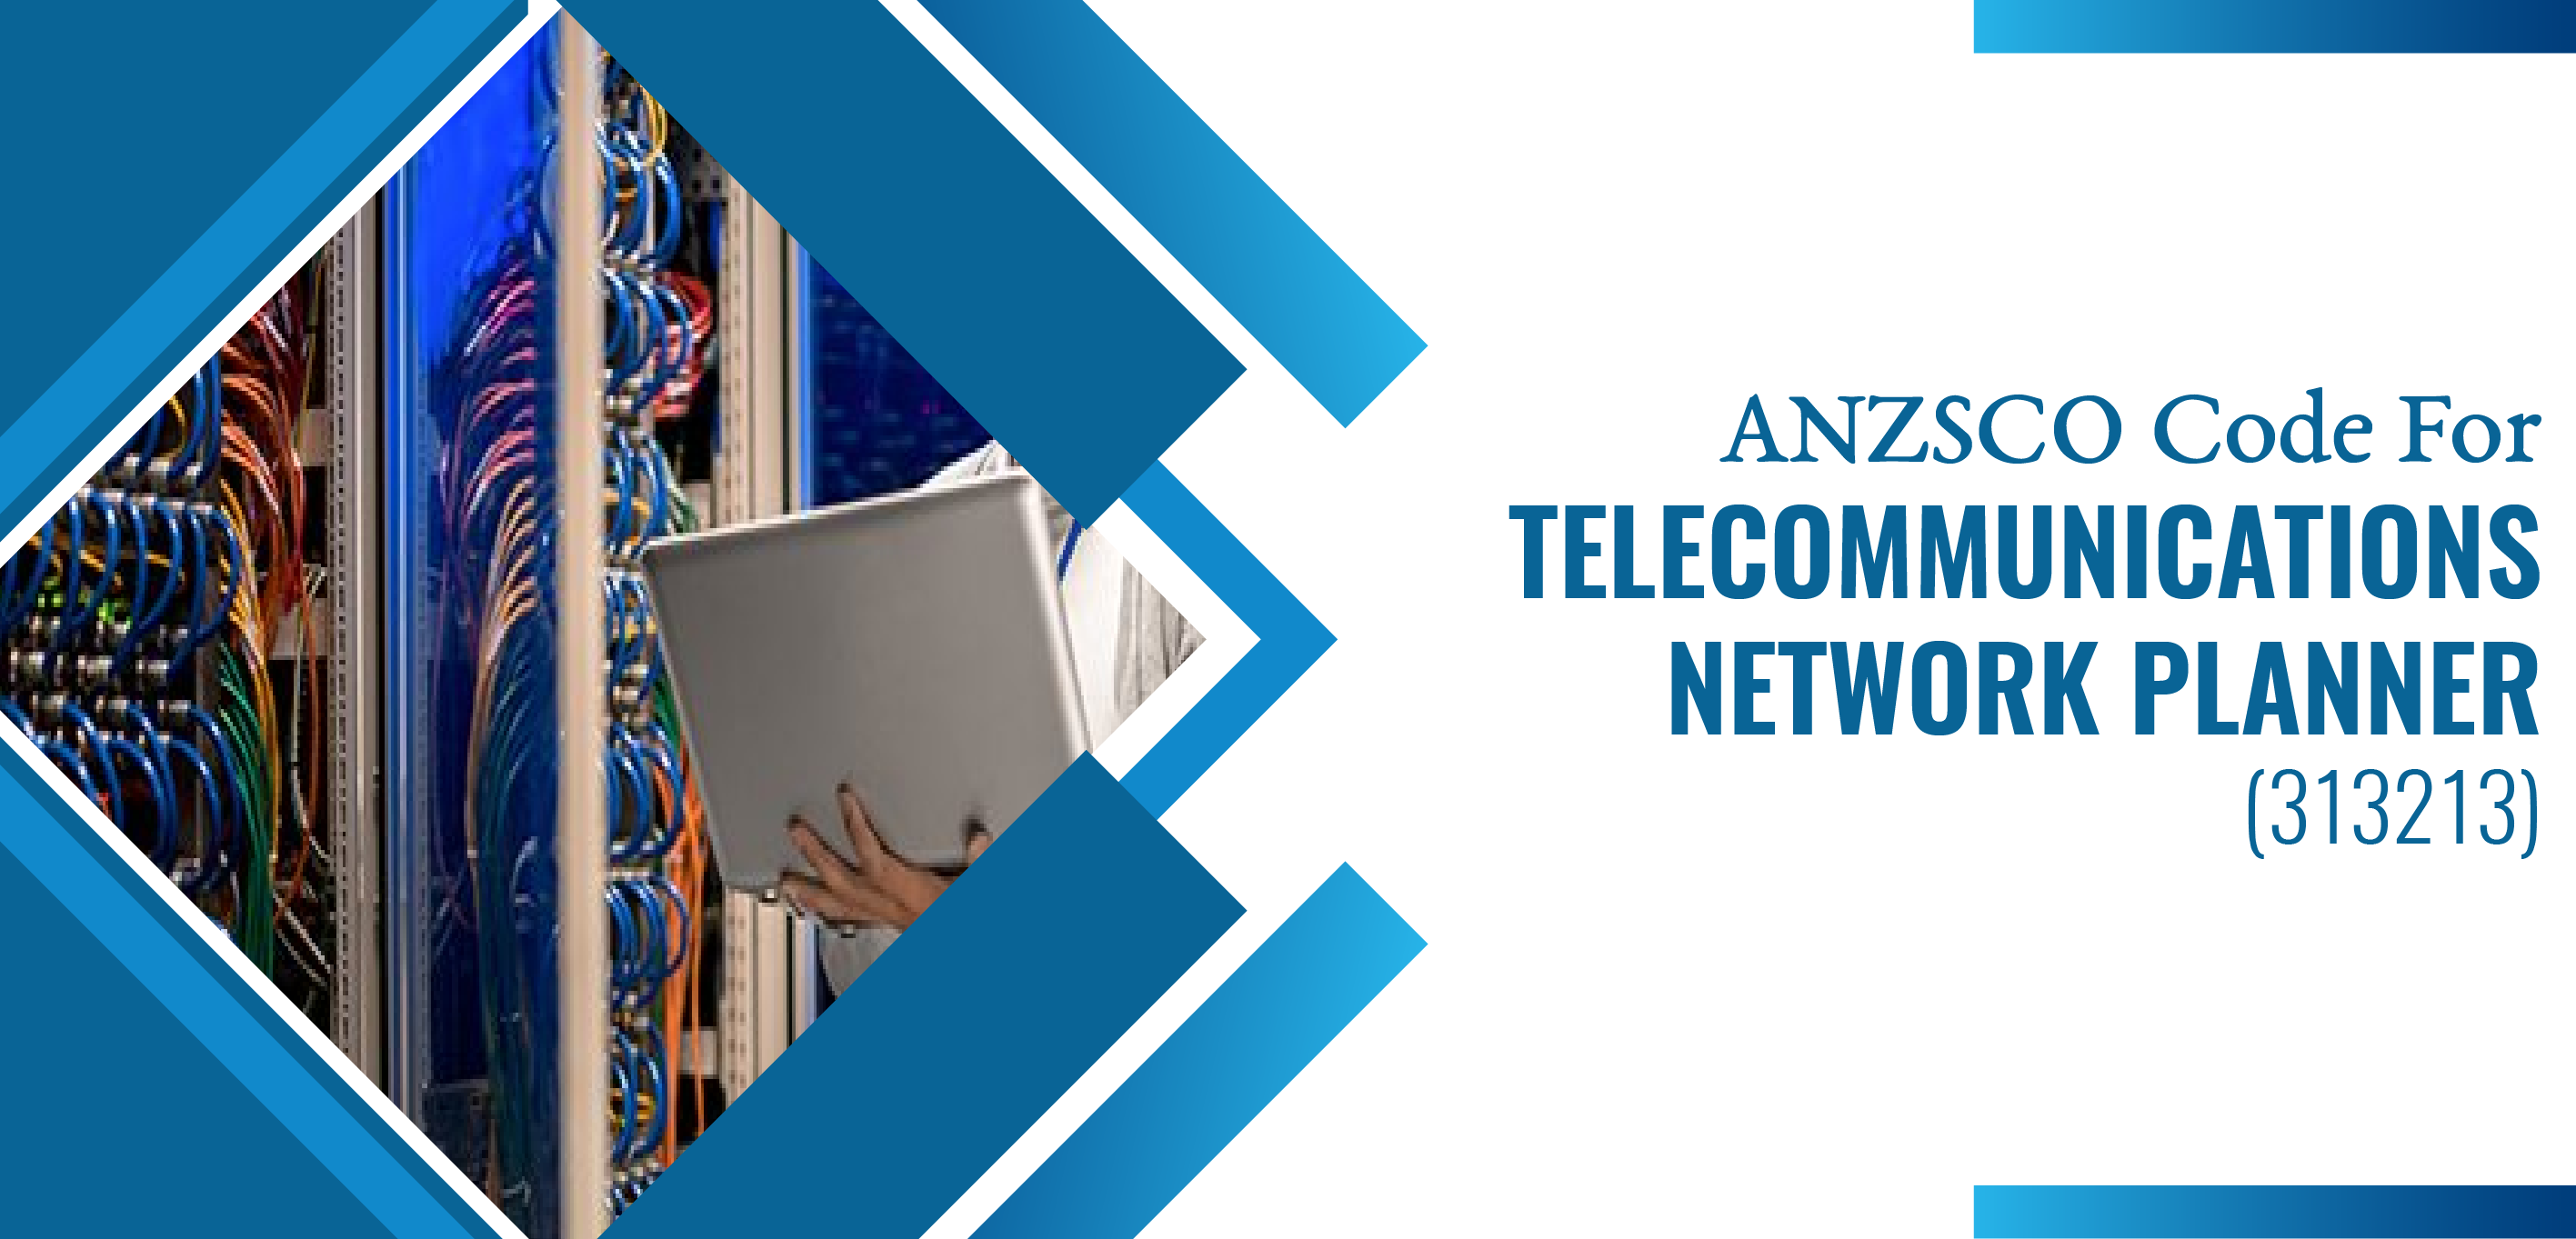 Telecommunications Network Planner ANZSCO